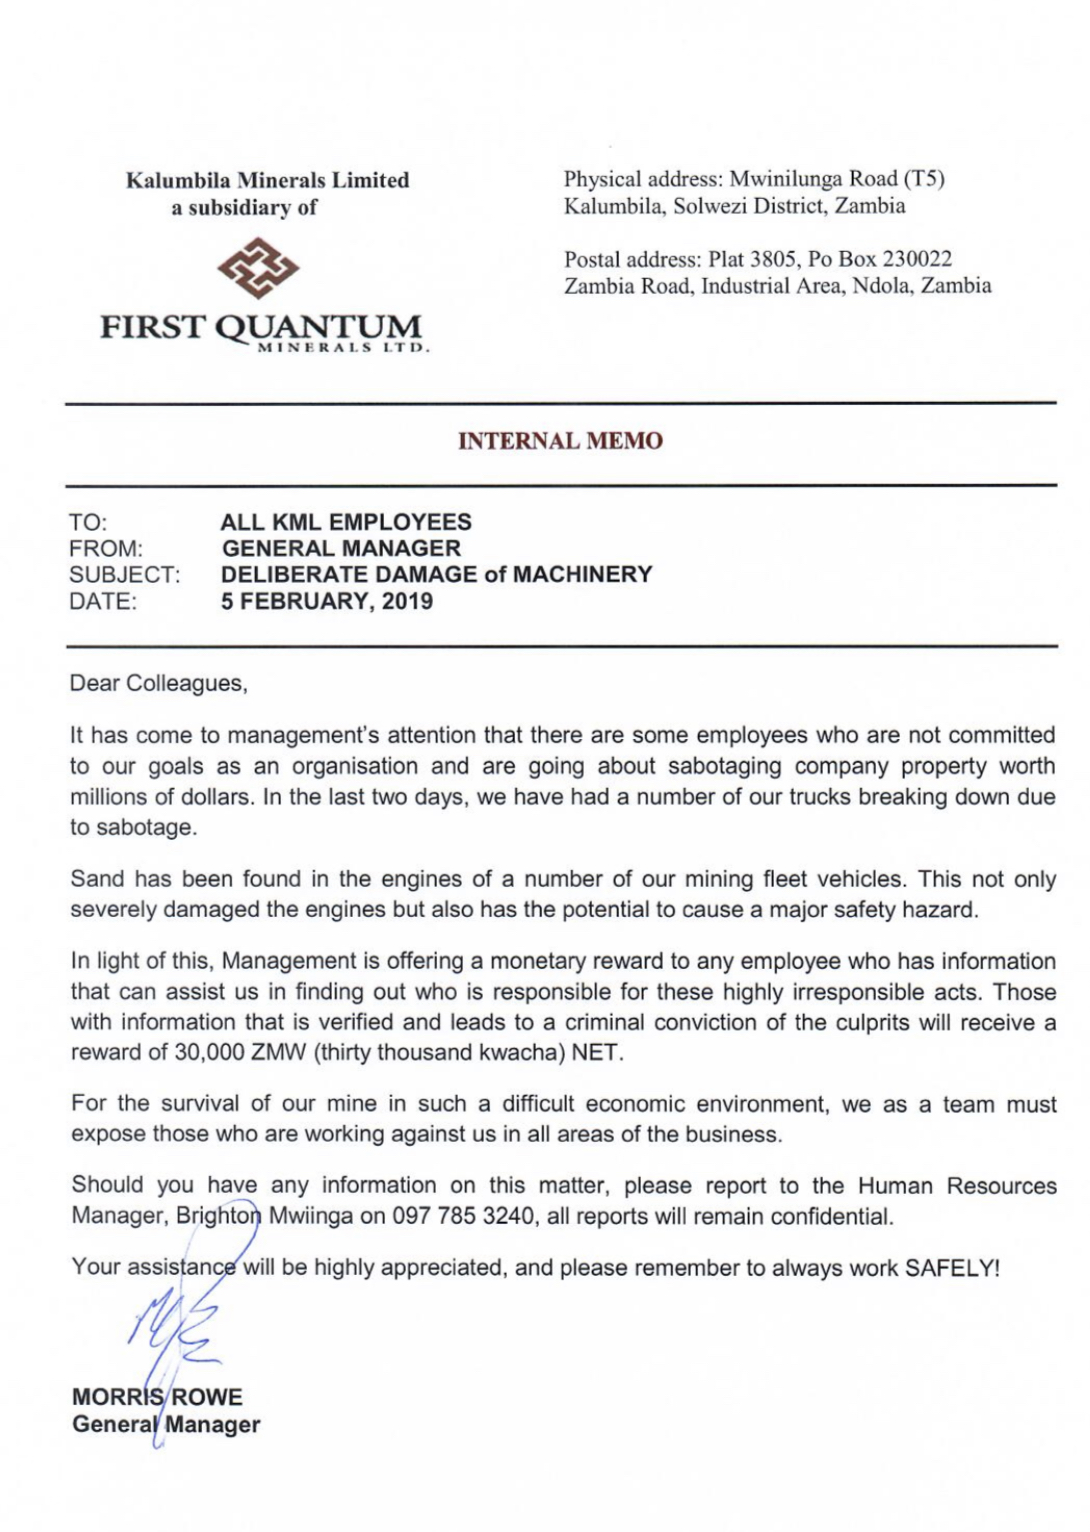 Reduced salaries; First Quantum miners hit back